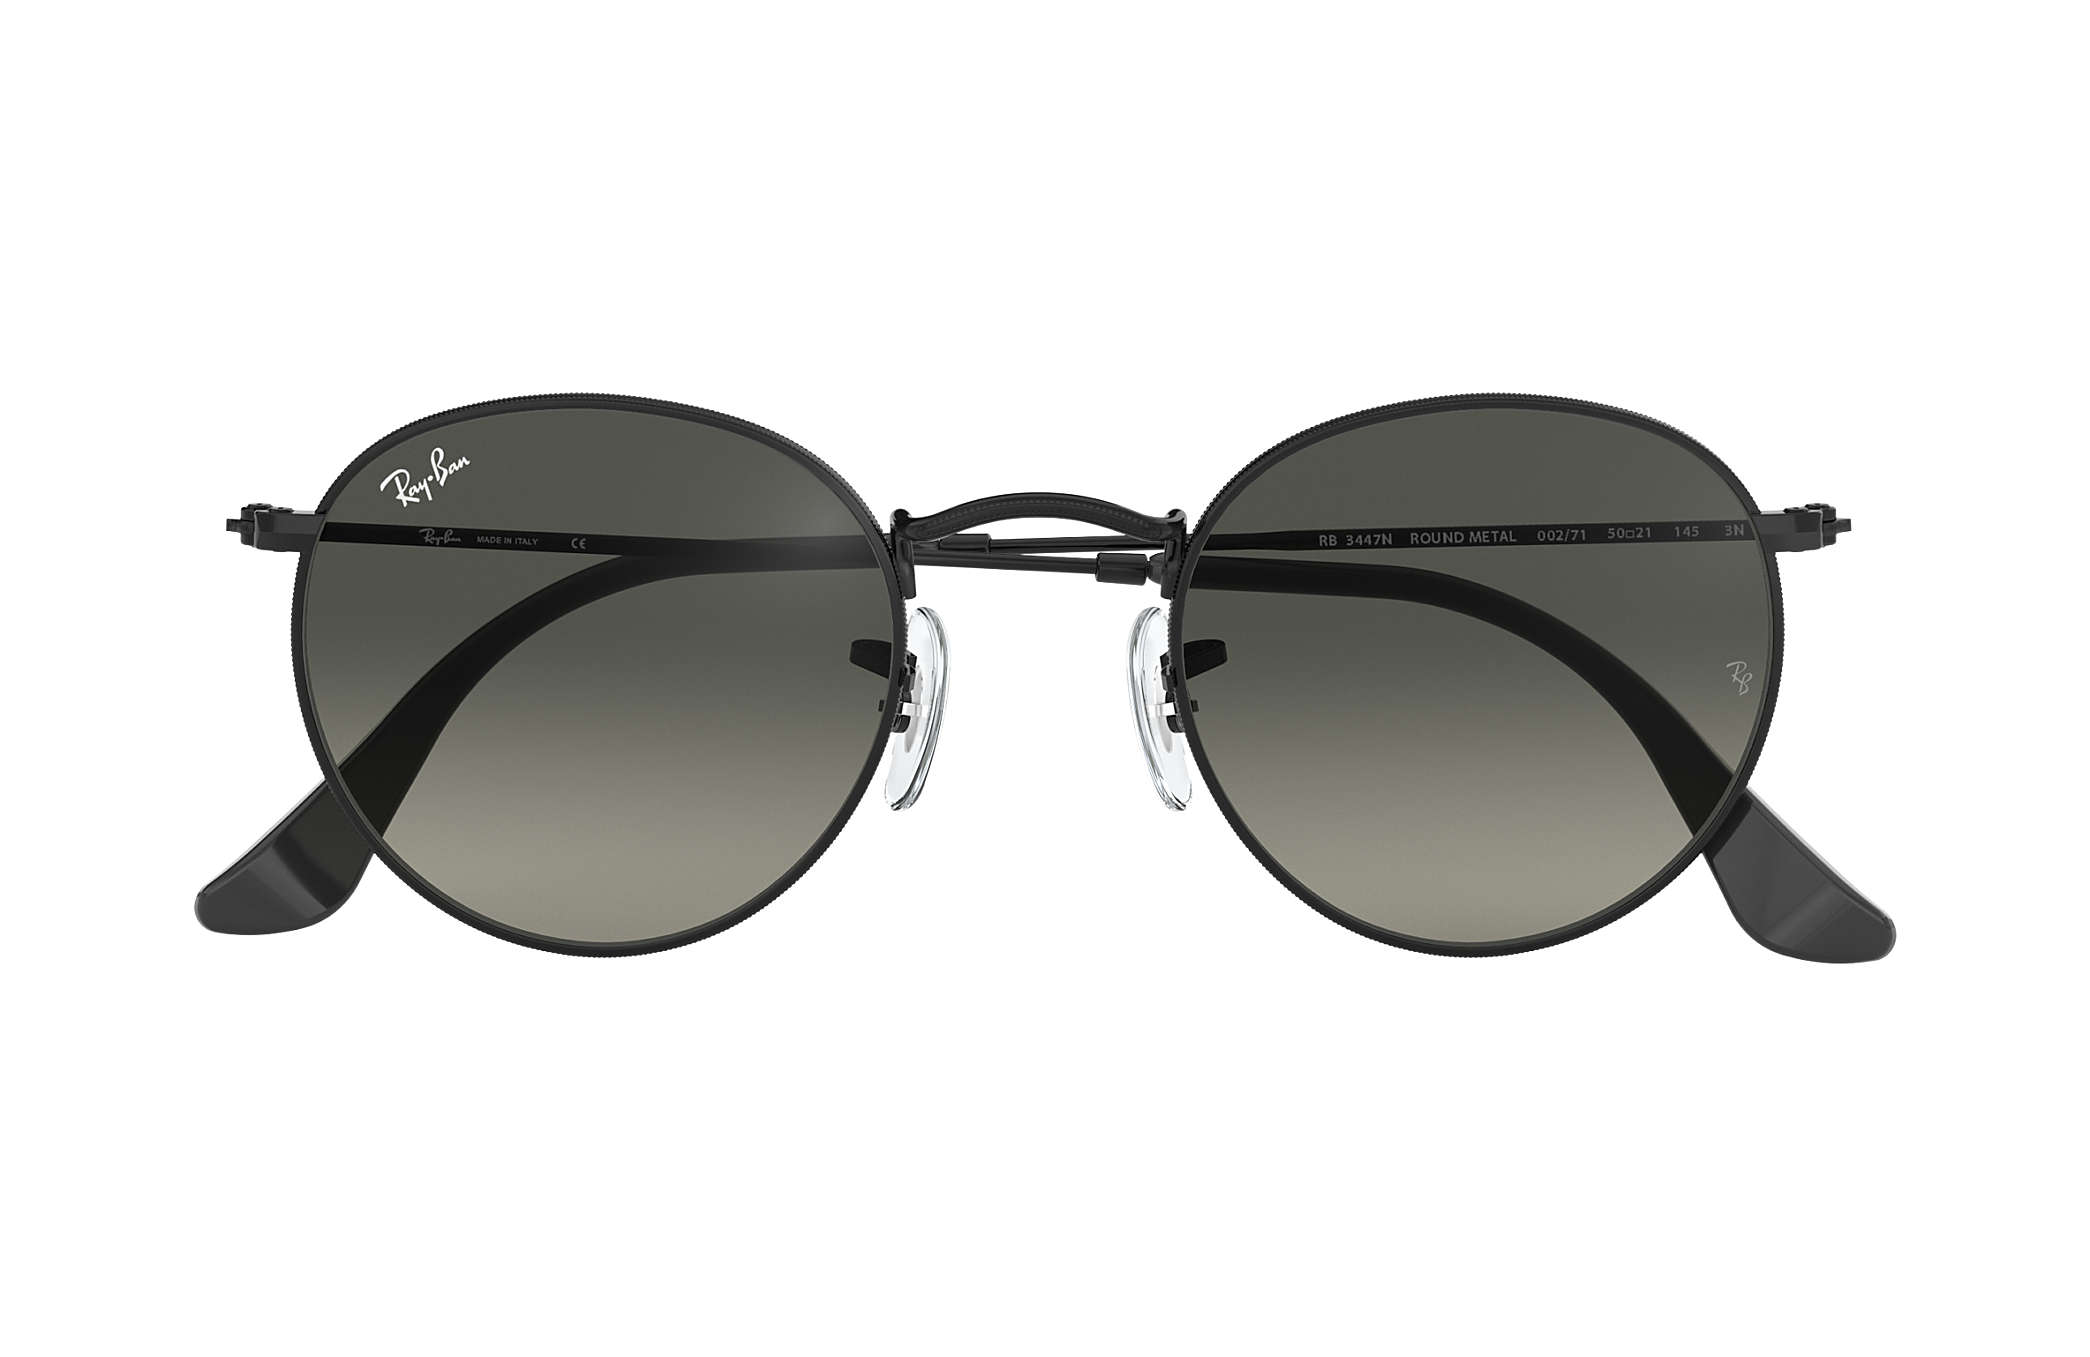 5460d5f4b46e7 Ray-Ban Round Flat Lenses RB3447N Black - Metal - Grey Lenses ...